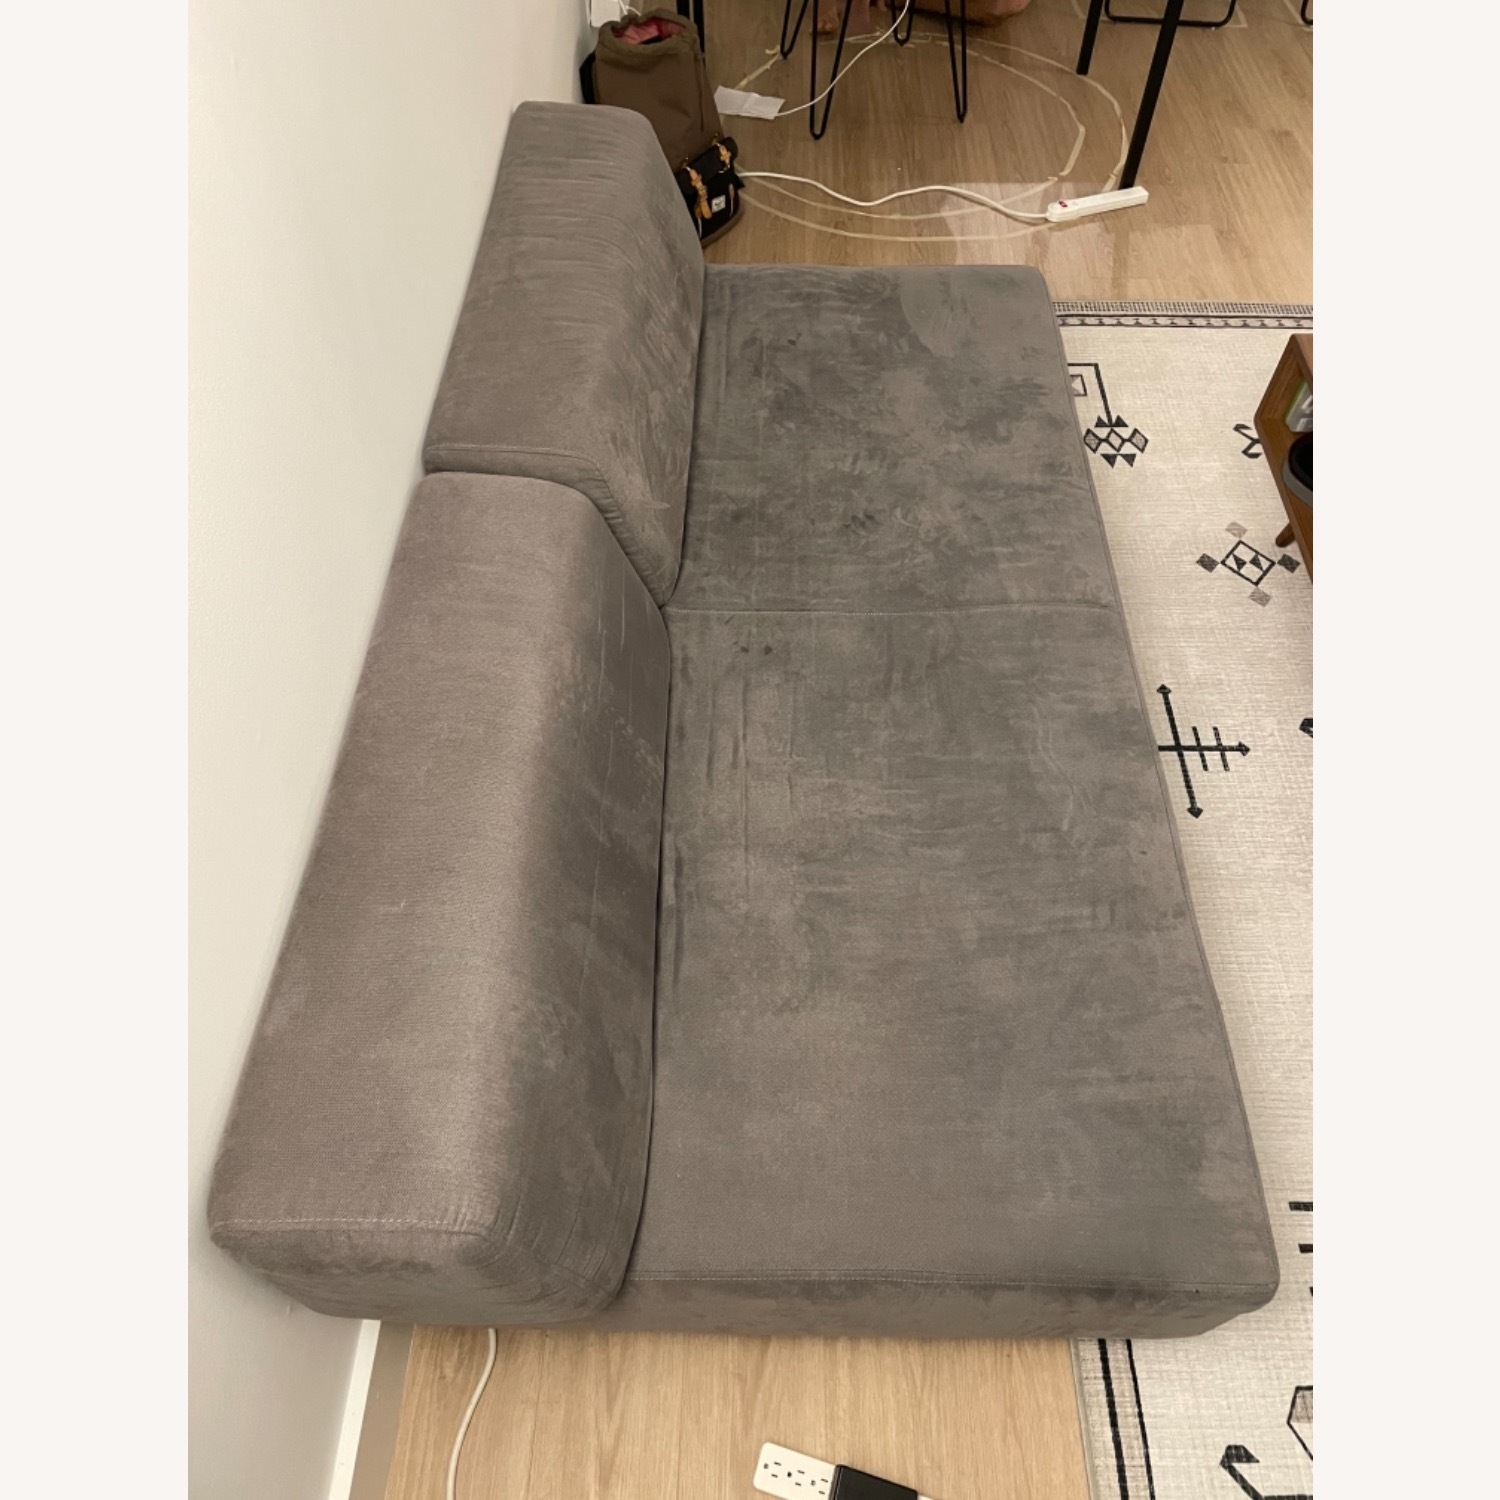 West Elm Tillary Couch - image-4